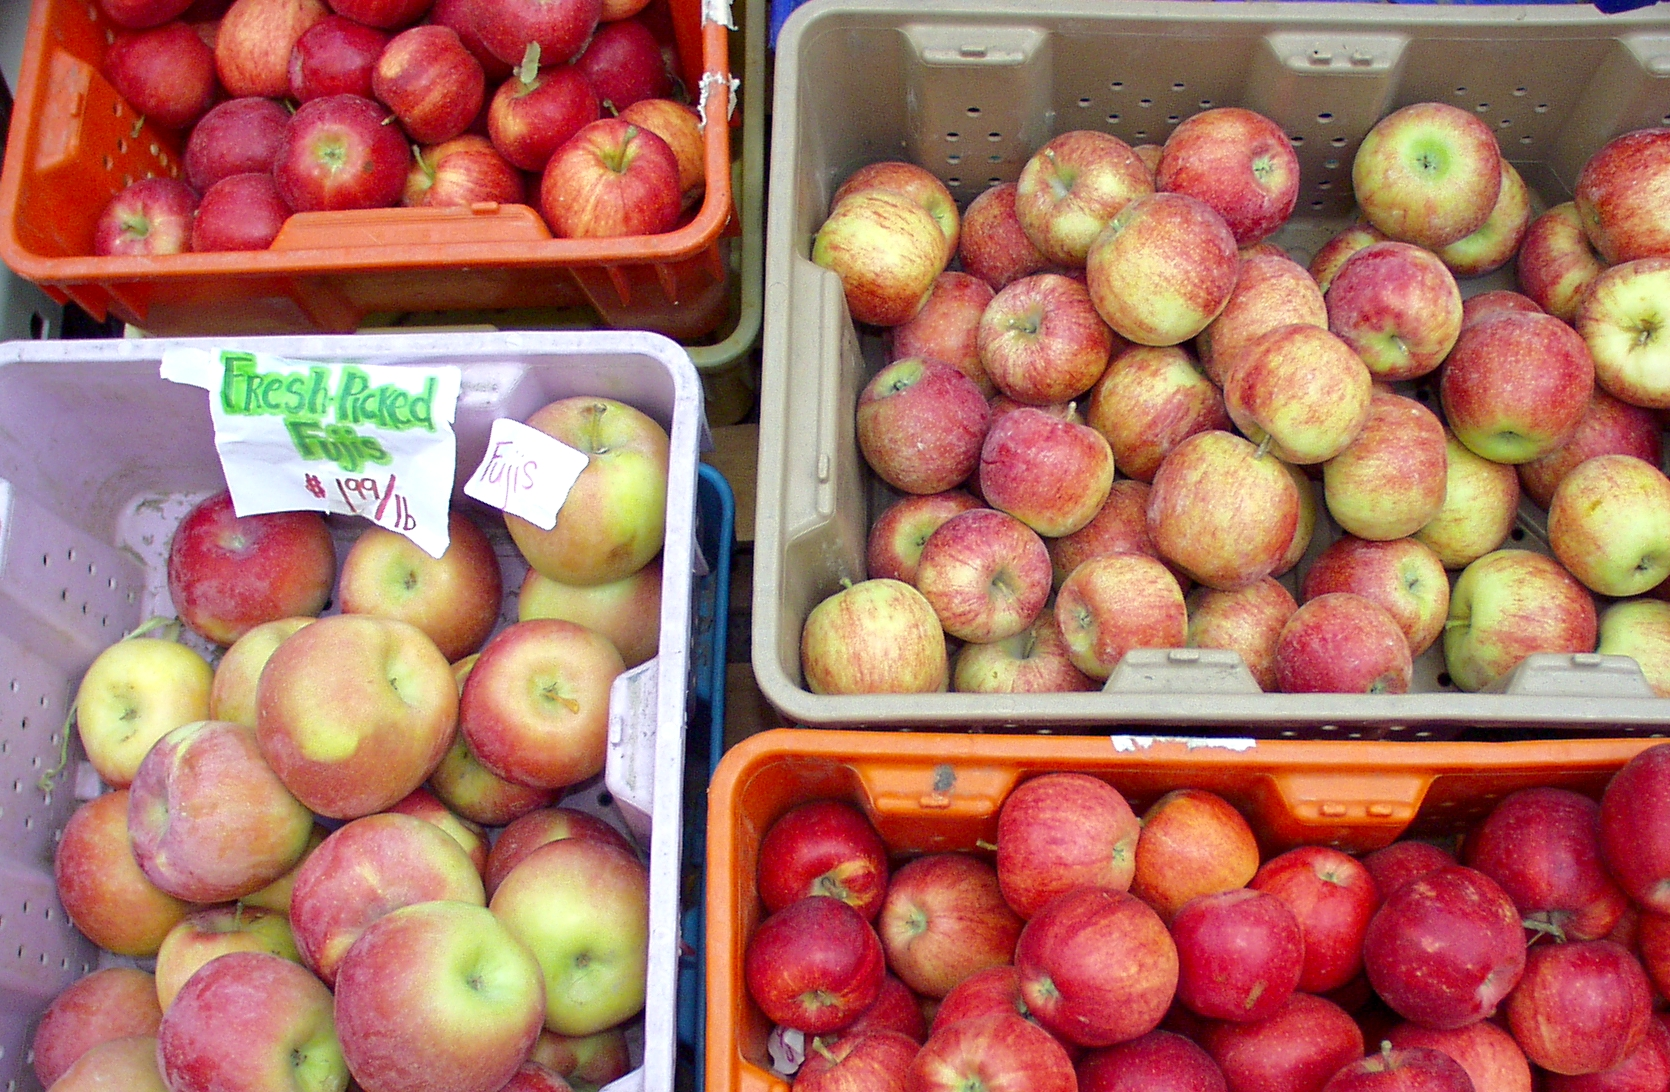 Freshly picked apples from Lyall Farms. Photo copyright 2009 by Zachary D. Lyons.